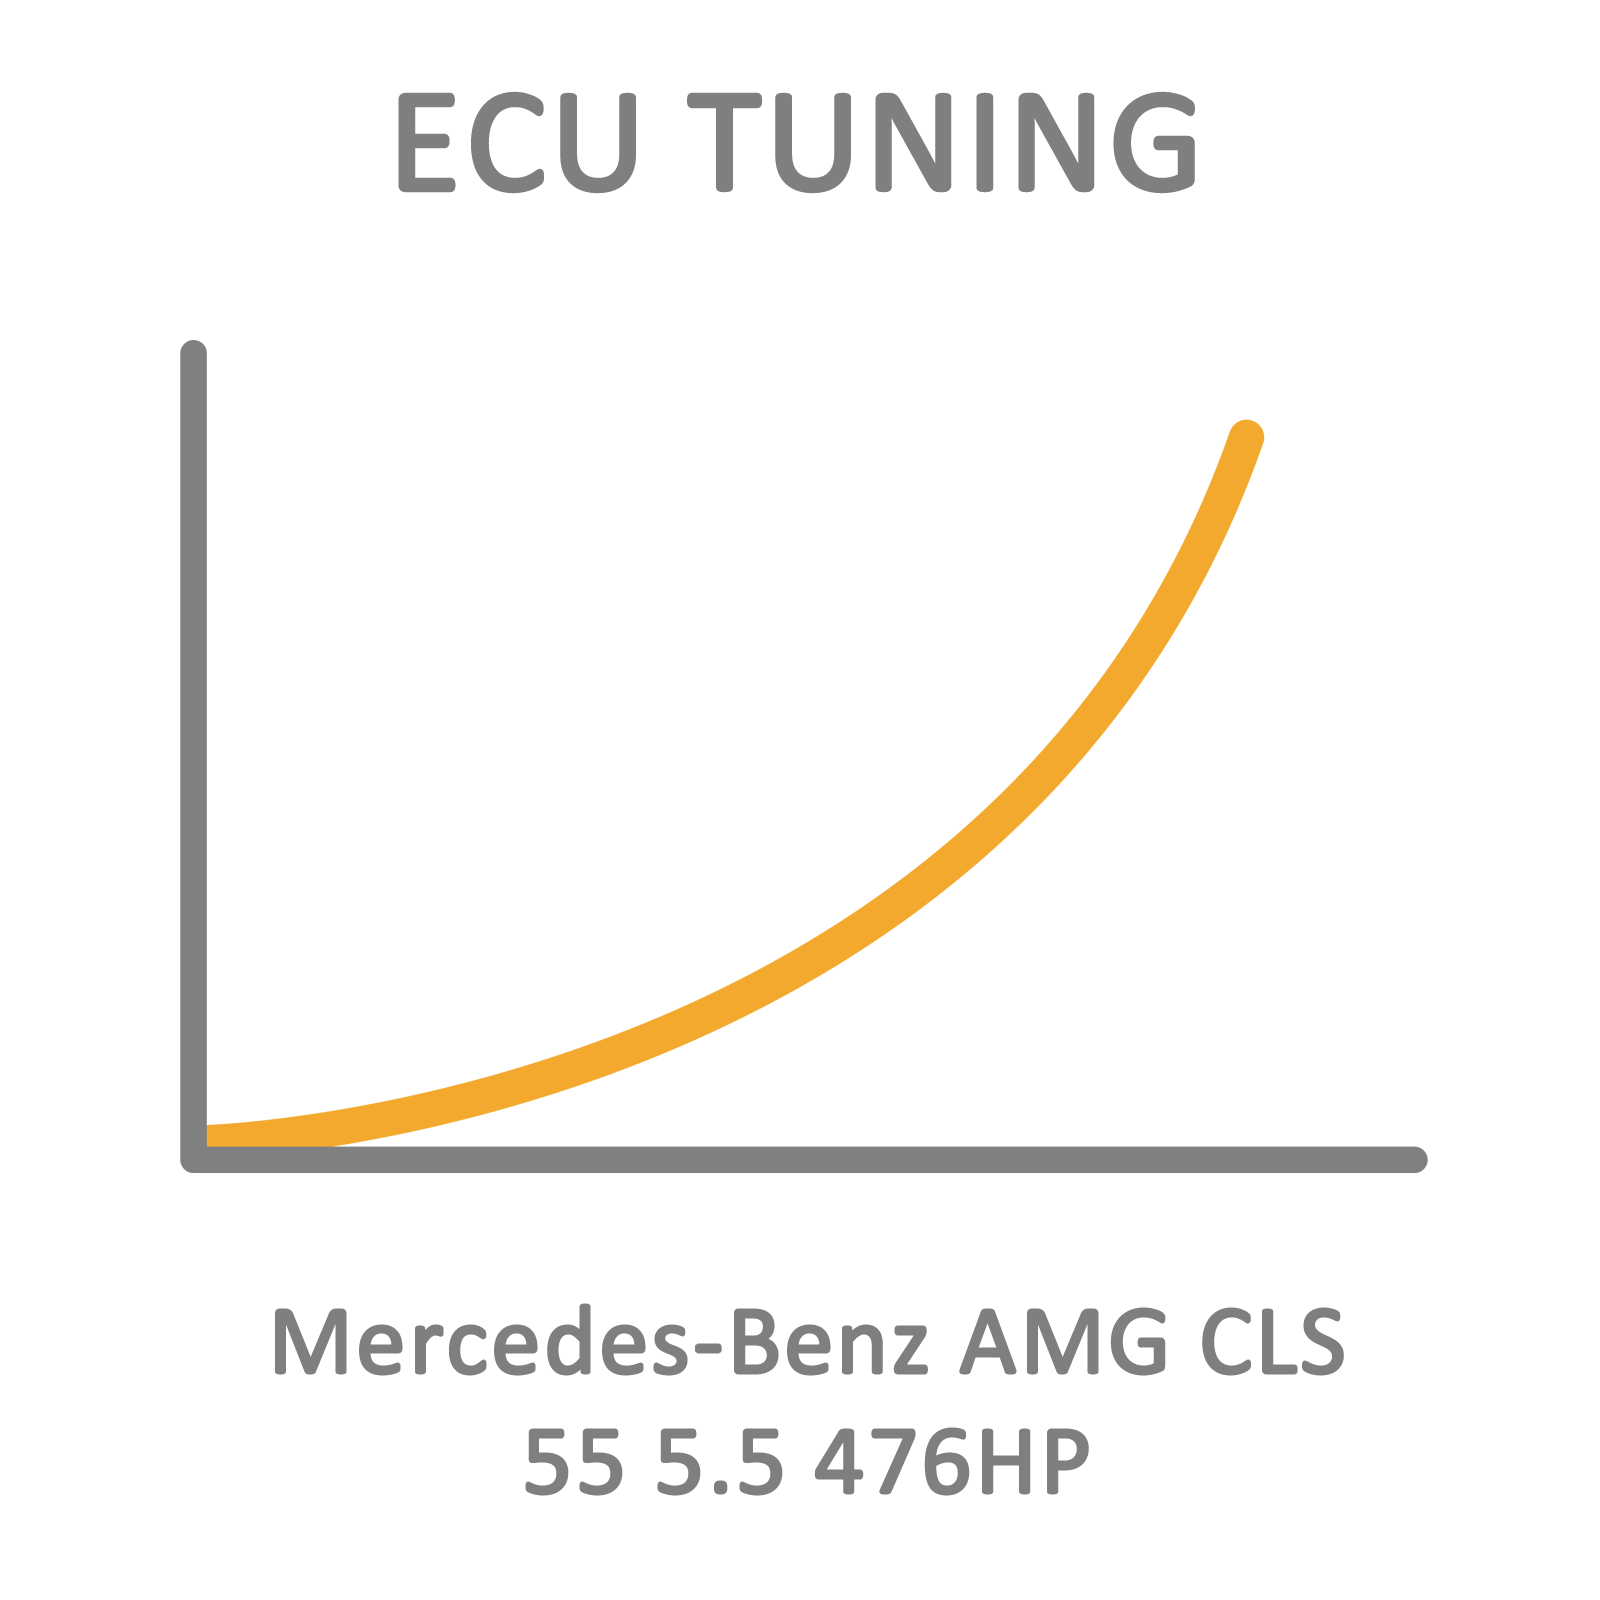 Mercedes-Benz AMG CLS 55 5.5 476HP ECU Tuning Remapping